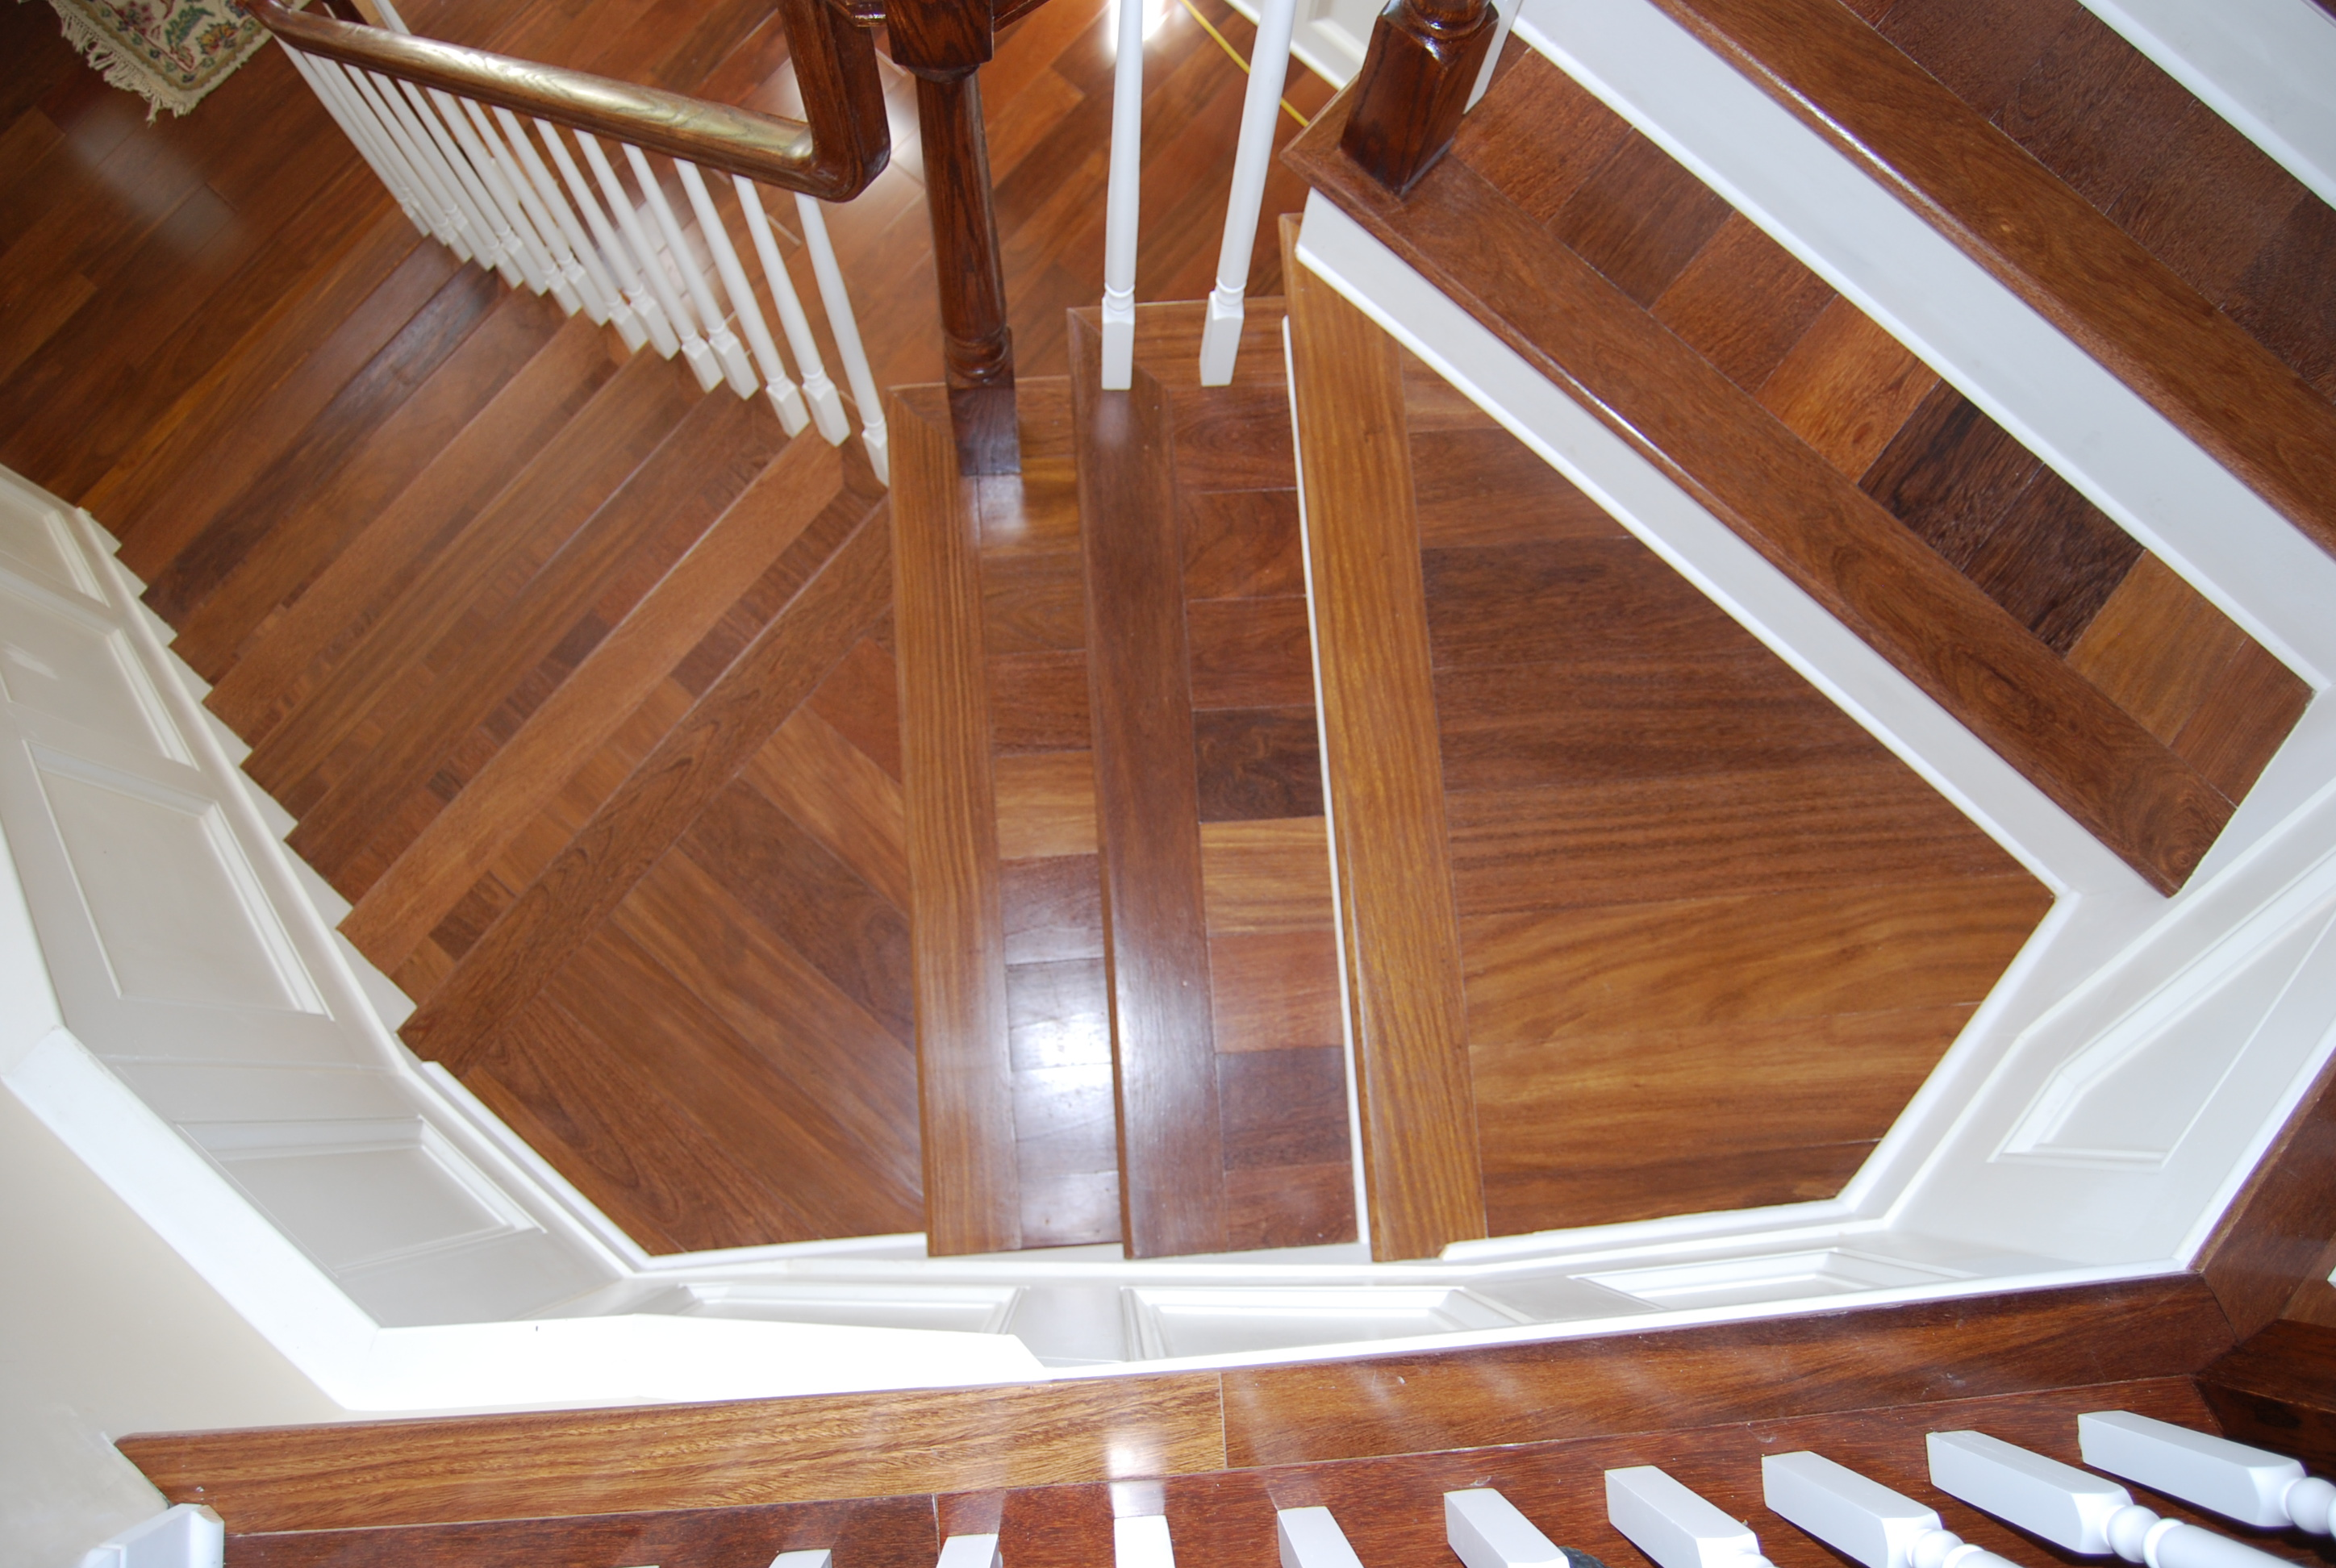 Bamboo Installation | Morning Star Bamboo | Cali Bamboo Flooring Reviews